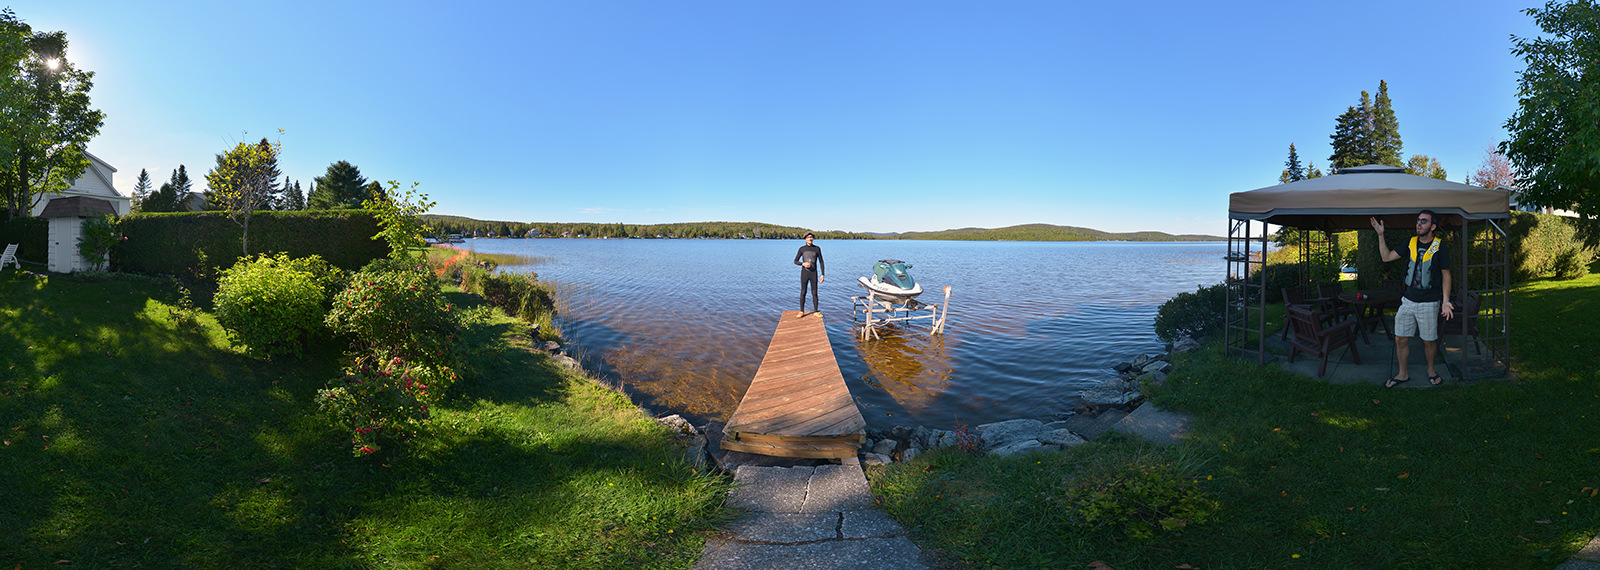 Wakeboard afternoon, Thetford Mines - Panorama 360°